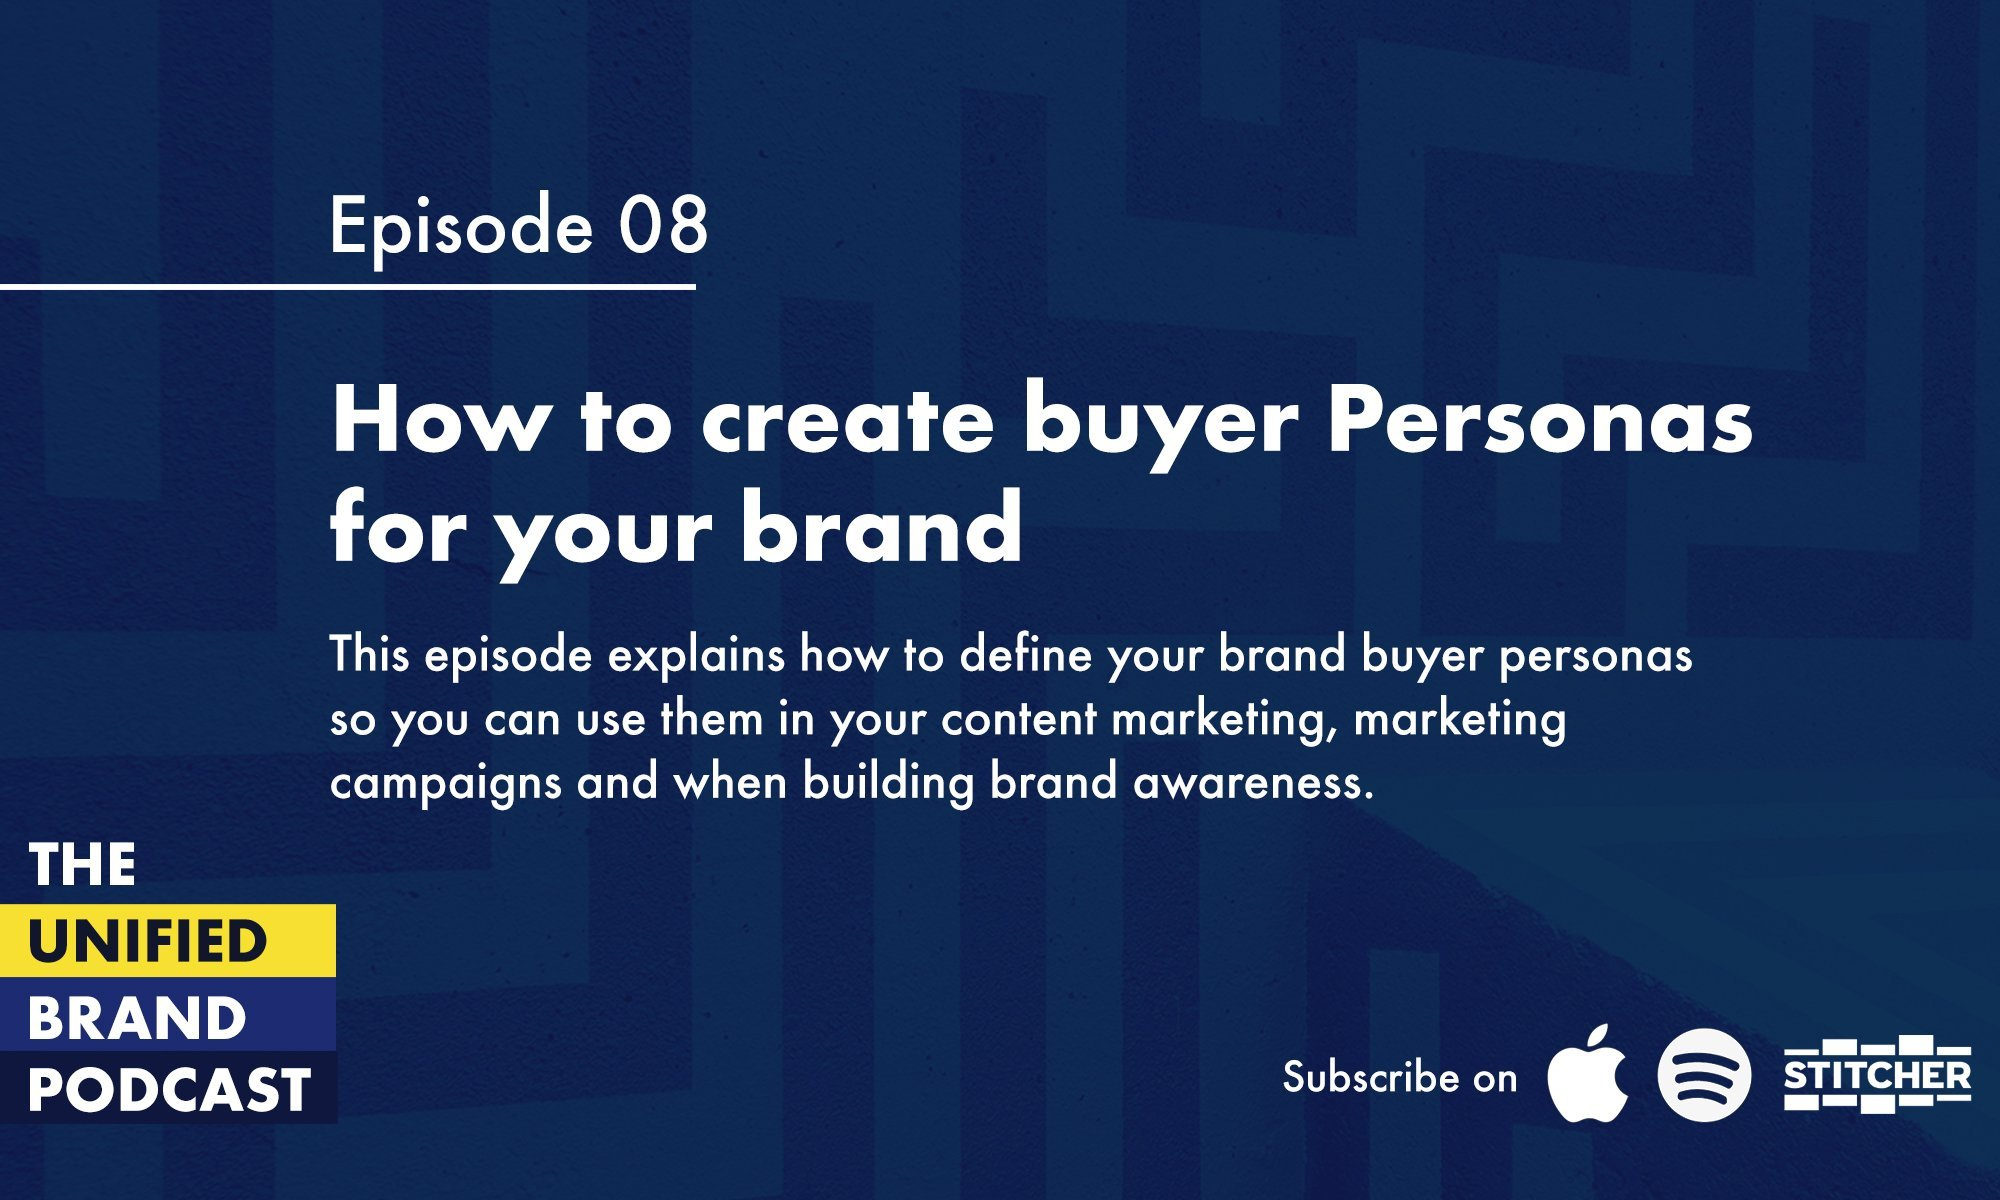 How to create buyer personas for your brand